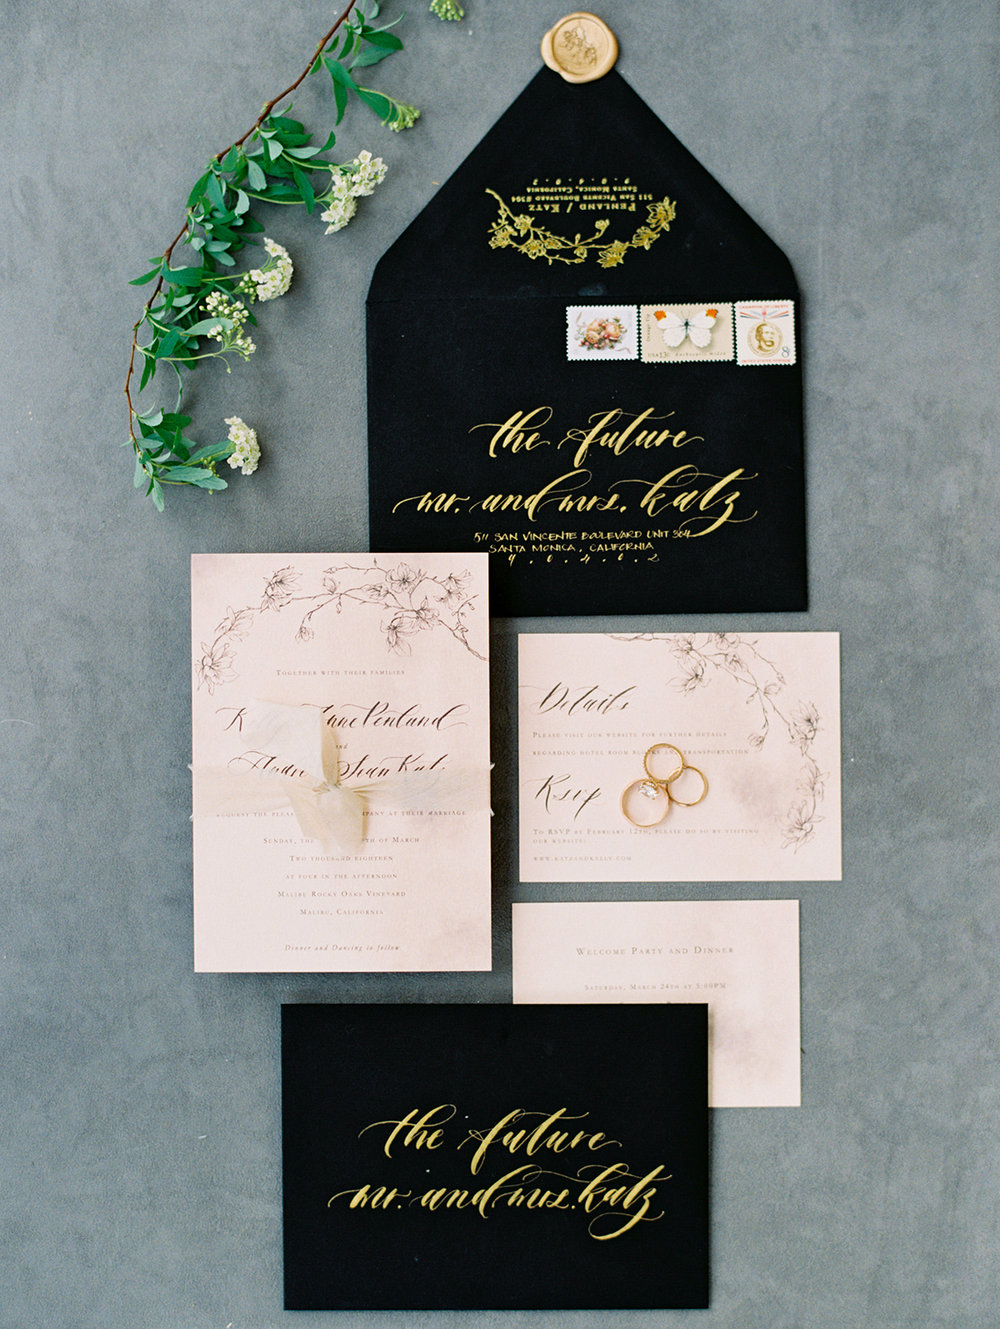 Photo by  Jon Cu Photography  | Wedding Planning by  The Elegant Ninja  | Floral by  Poppy Design Co  | Venue  Malibu Rocky Oaks  | Rental  Premiere Party Rents  | Linen by  La Tavola Linen  | Stationery by  Seniman Calligraphy